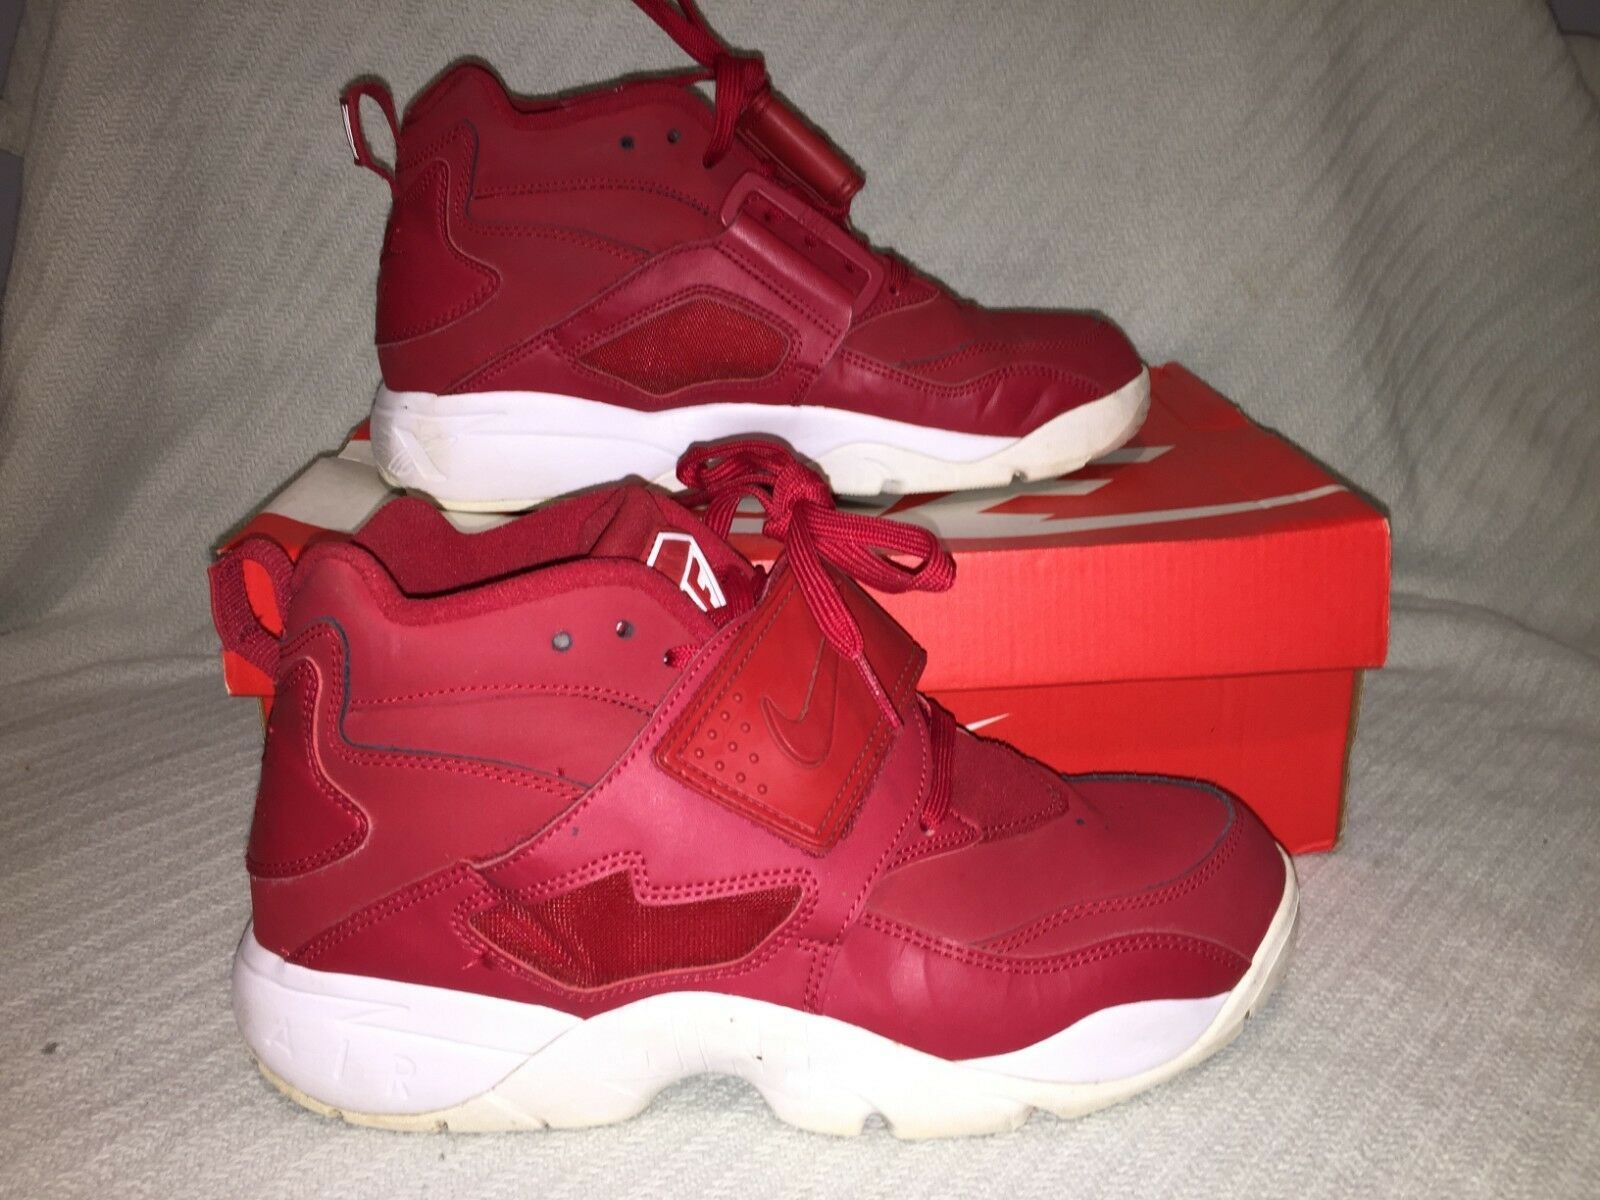 Men's Size 8 Nike Air Diamond Turf Gym Red White Deion Sanders shoes 309434-600